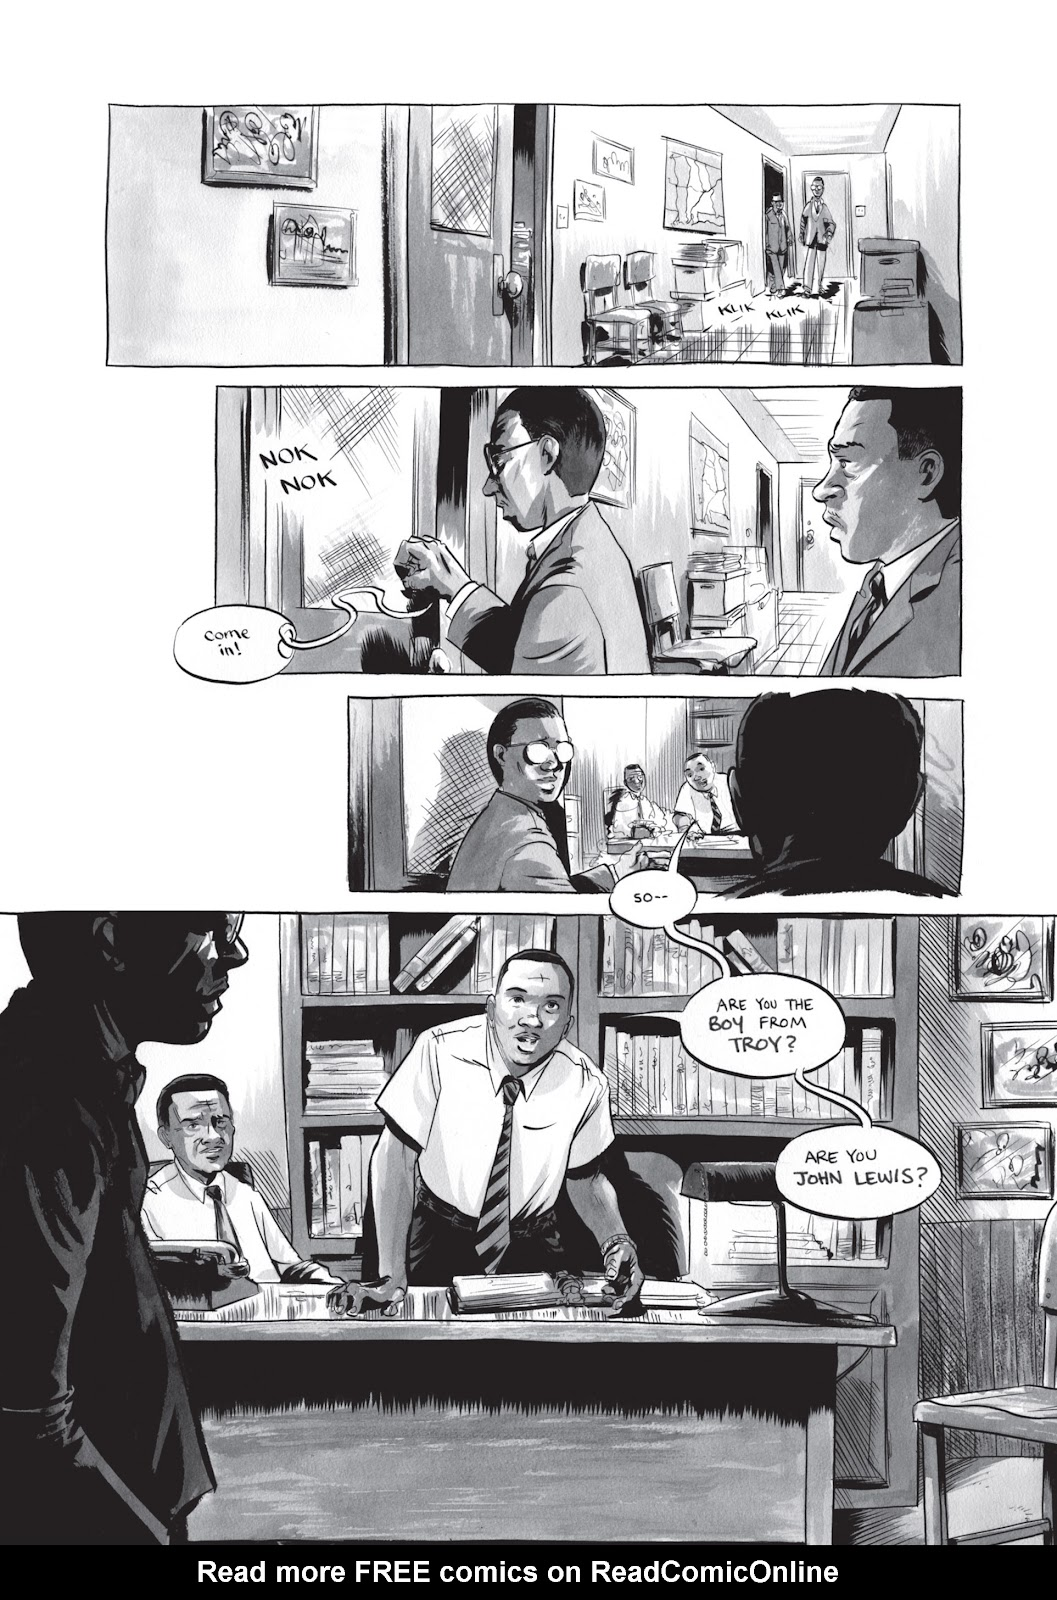 March 1 Page 66